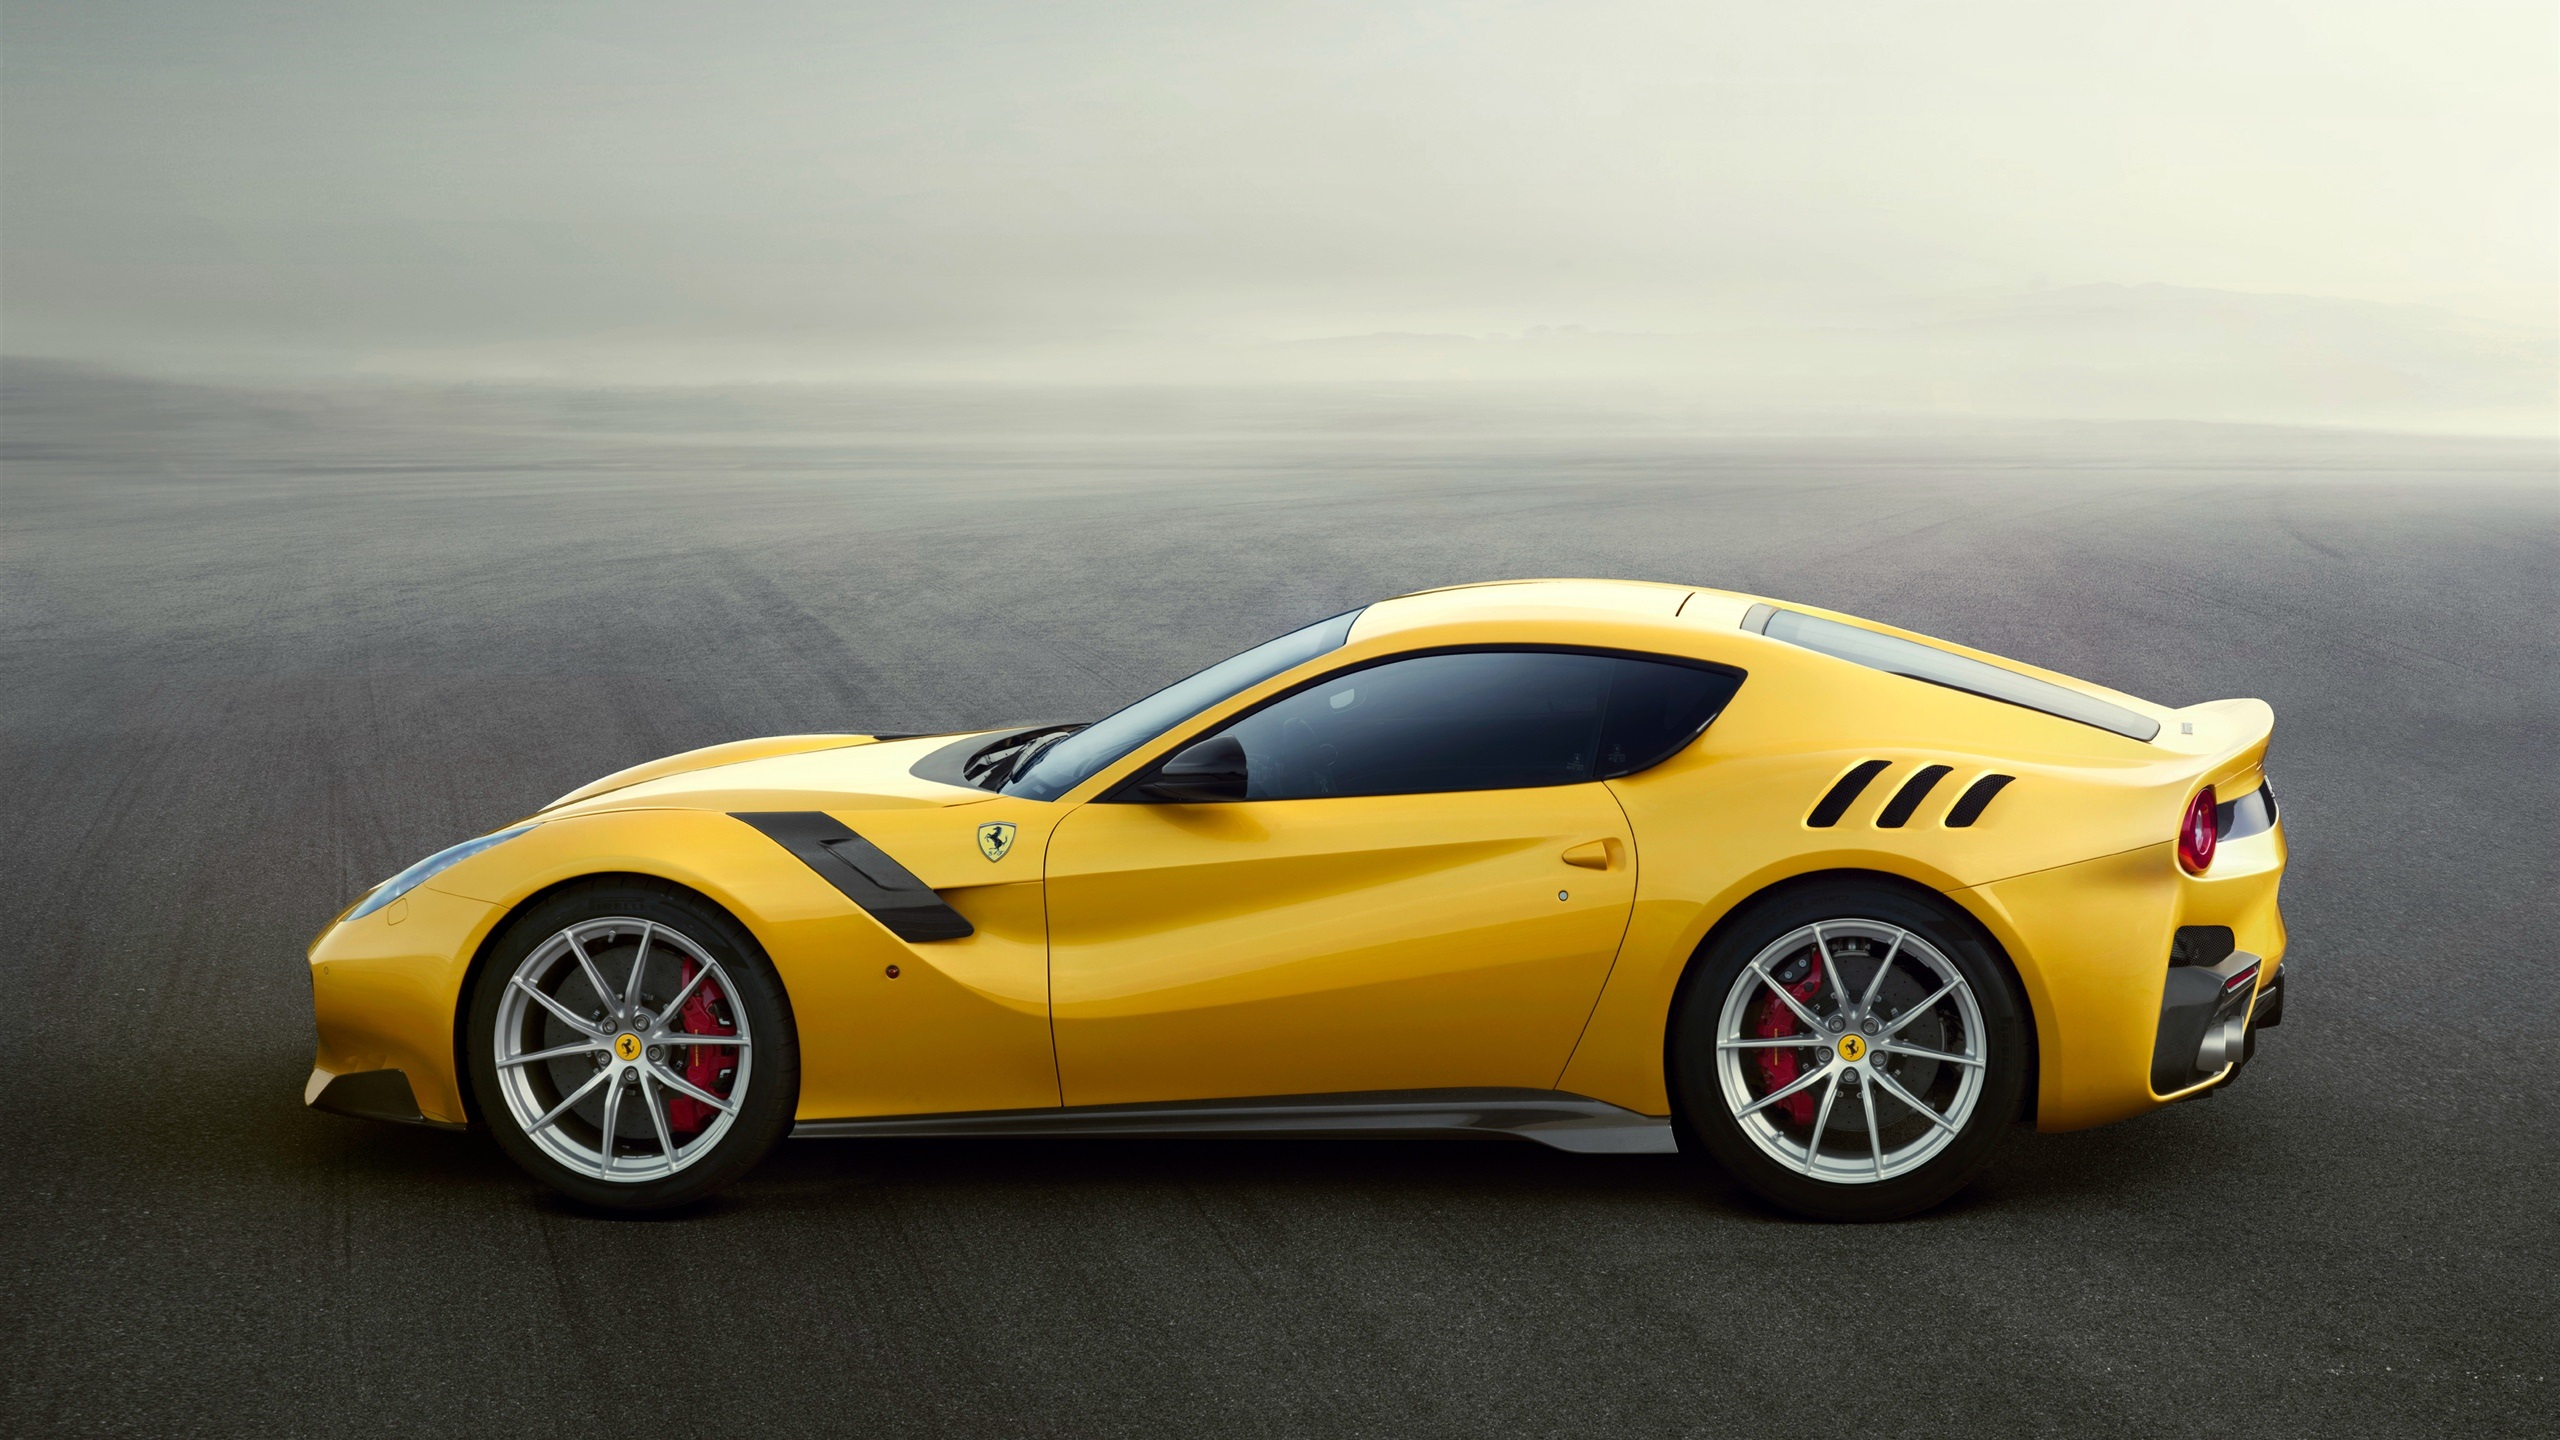 Wallpaper Ferrari F12 Yellow Supercar Side View 2560x1440 Qhd Picture Image